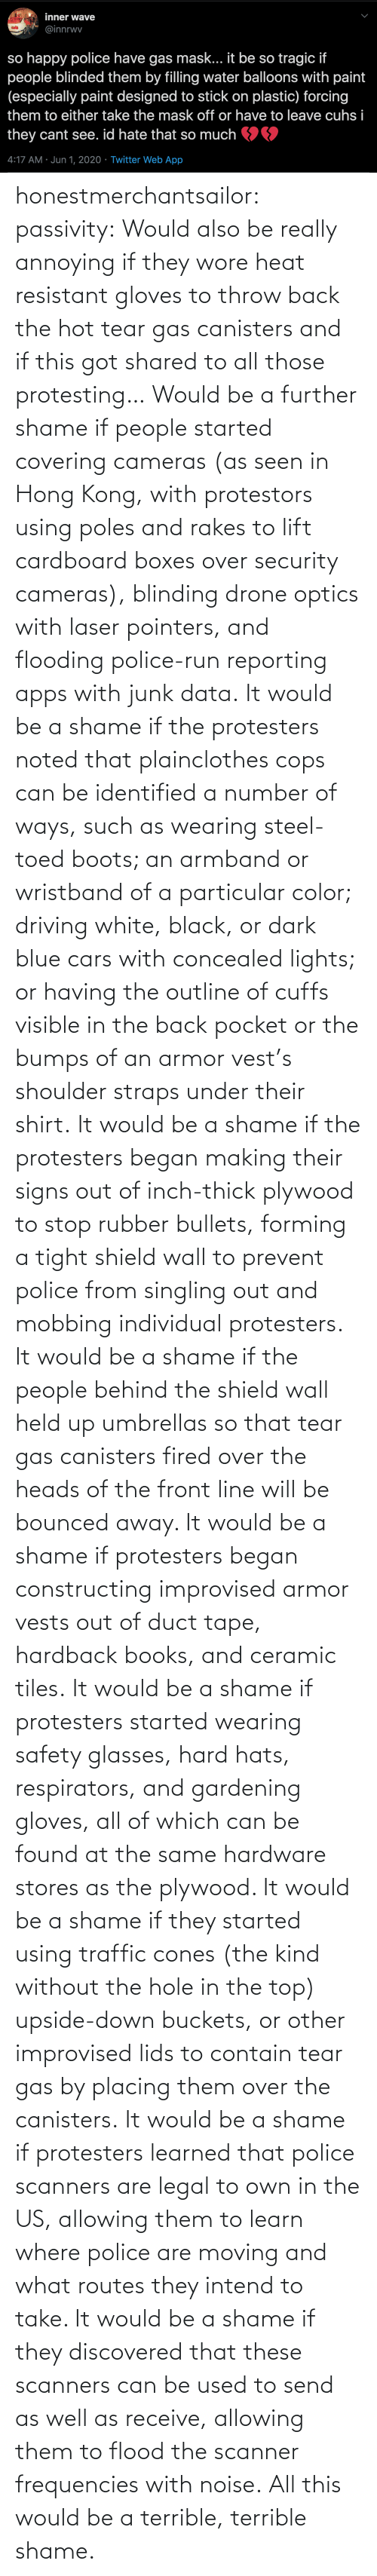 Out Of: honestmerchantsailor: passivity: Would also be really annoying if they wore heat resistant gloves to throw back the hot tear gas canisters and if this got shared to all those protesting… Would be a further shame if people started covering cameras (as seen in Hong Kong, with protestors using poles and rakes to lift cardboard boxes over security cameras), blinding drone optics with laser pointers, and flooding police-run reporting apps with junk data. It would be a shame if the protesters noted that plainclothes cops can be identified a number of ways, such as wearing steel-toed boots; an armband or wristband of a particular color; driving white, black, or dark blue cars with concealed lights; or having the outline of cuffs visible in the back pocket or the bumps of an armor vest's shoulder straps under their shirt. It would be a shame if the protesters began making their signs out of inch-thick plywood to stop rubber bullets, forming a tight shield wall to prevent police from singling out and mobbing individual protesters. It would be a shame if the people behind the shield wall held up umbrellas so that tear gas canisters fired over the heads of the front line will be bounced away. It would be a shame if protesters began constructing improvised armor vests out of duct tape, hardback books, and ceramic tiles. It would be a shame if protesters started wearing safety glasses, hard hats, respirators, and gardening gloves, all of which can be found at the same hardware stores as the plywood. It would be a shame if they started using traffic cones (the kind without the hole in the top) upside-down buckets, or other improvised lids to contain tear gas by placing them over the canisters. It would be a shame if protesters learned that police scanners are legal to own in the US, allowing them to learn where police are moving and what routes they intend to take. It would be a shame if they discovered that these scanners can be used to send as well as receive, allowing them to flood the scanner frequencies with noise. All this would be a terrible, terrible shame.